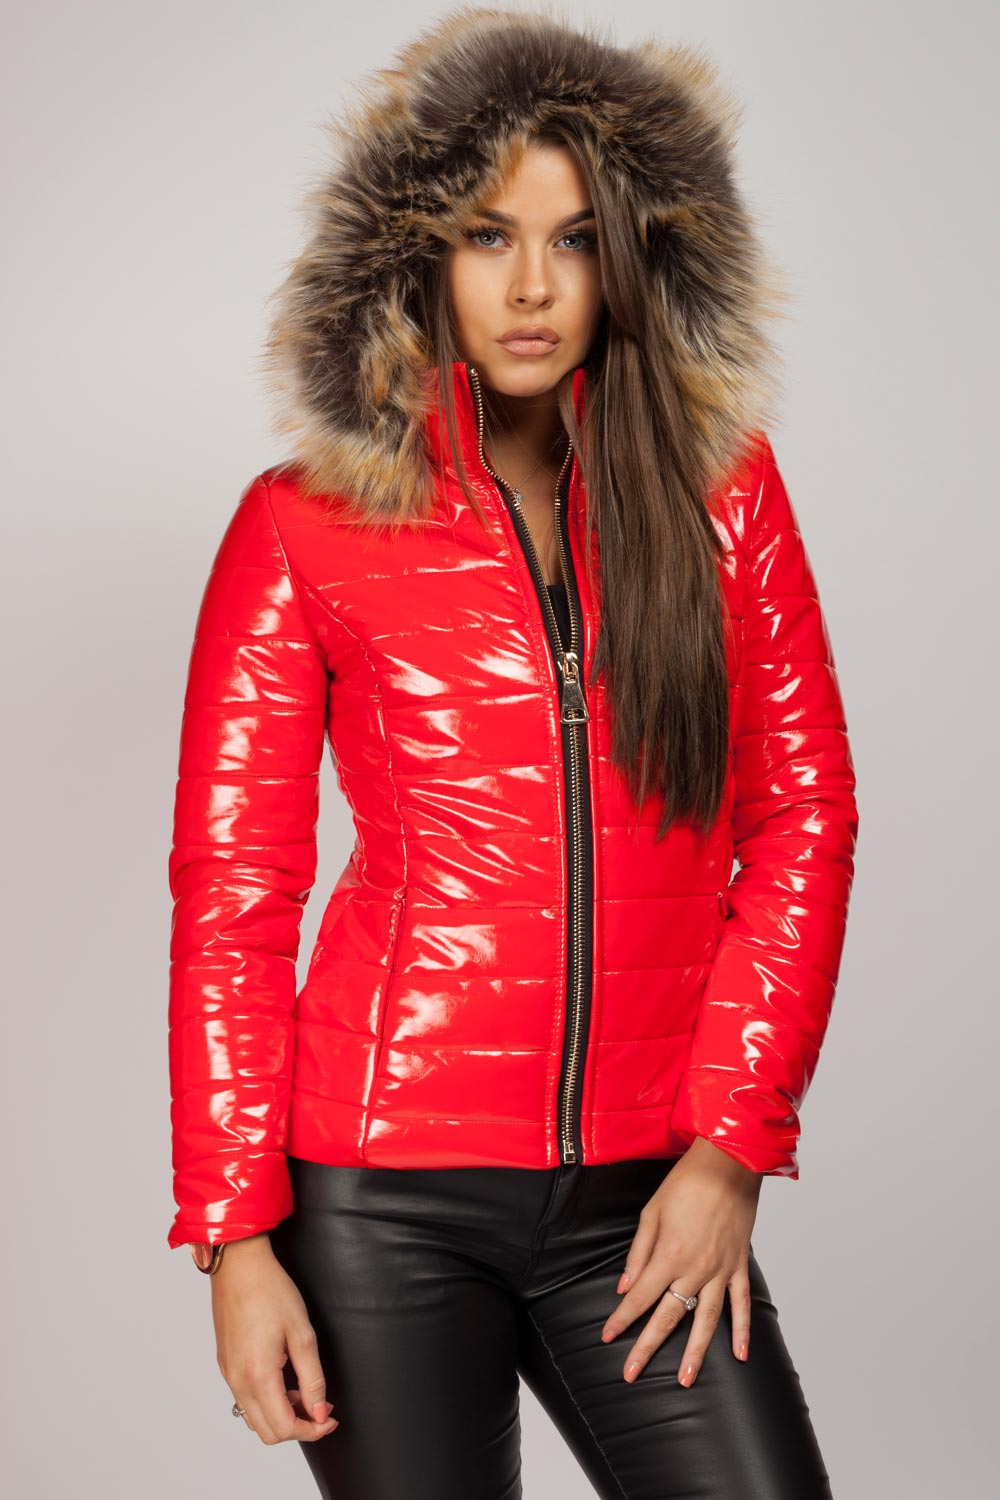 67a73d1c01e0 red puffer jacket women's. red faux fur hood wetlook jacket